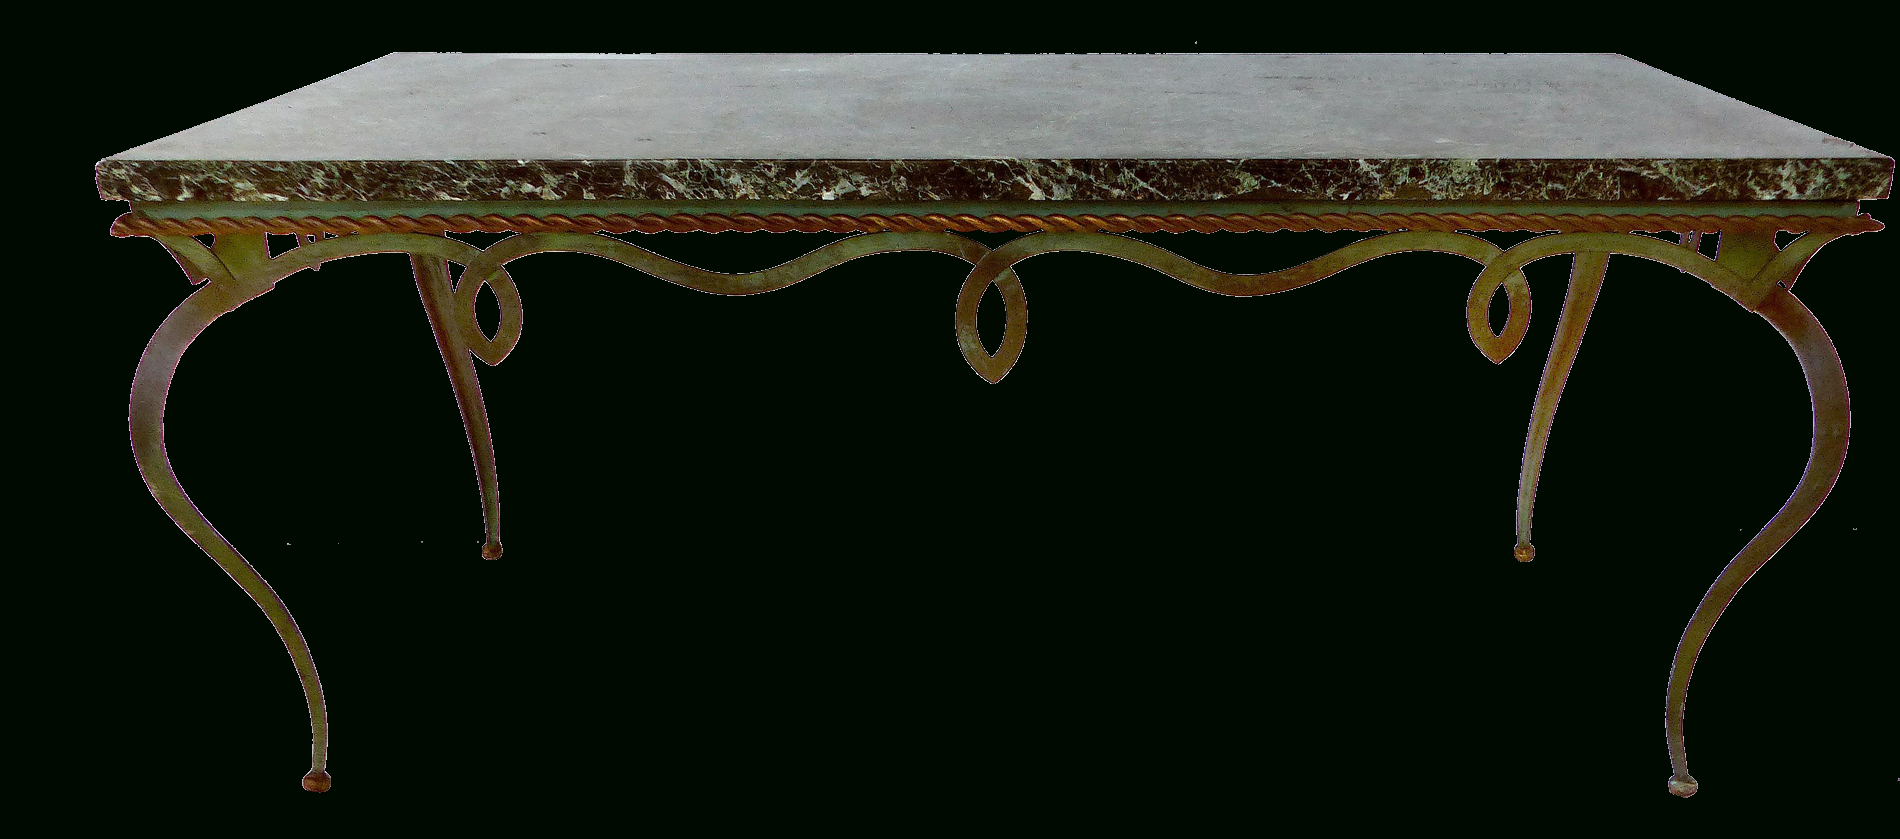 Modern Marble Iron Coffee Tables Throughout 2019 Gilbert Poillerat Style Marble Top Forged Iron Coffee Table (View 4 of 20)